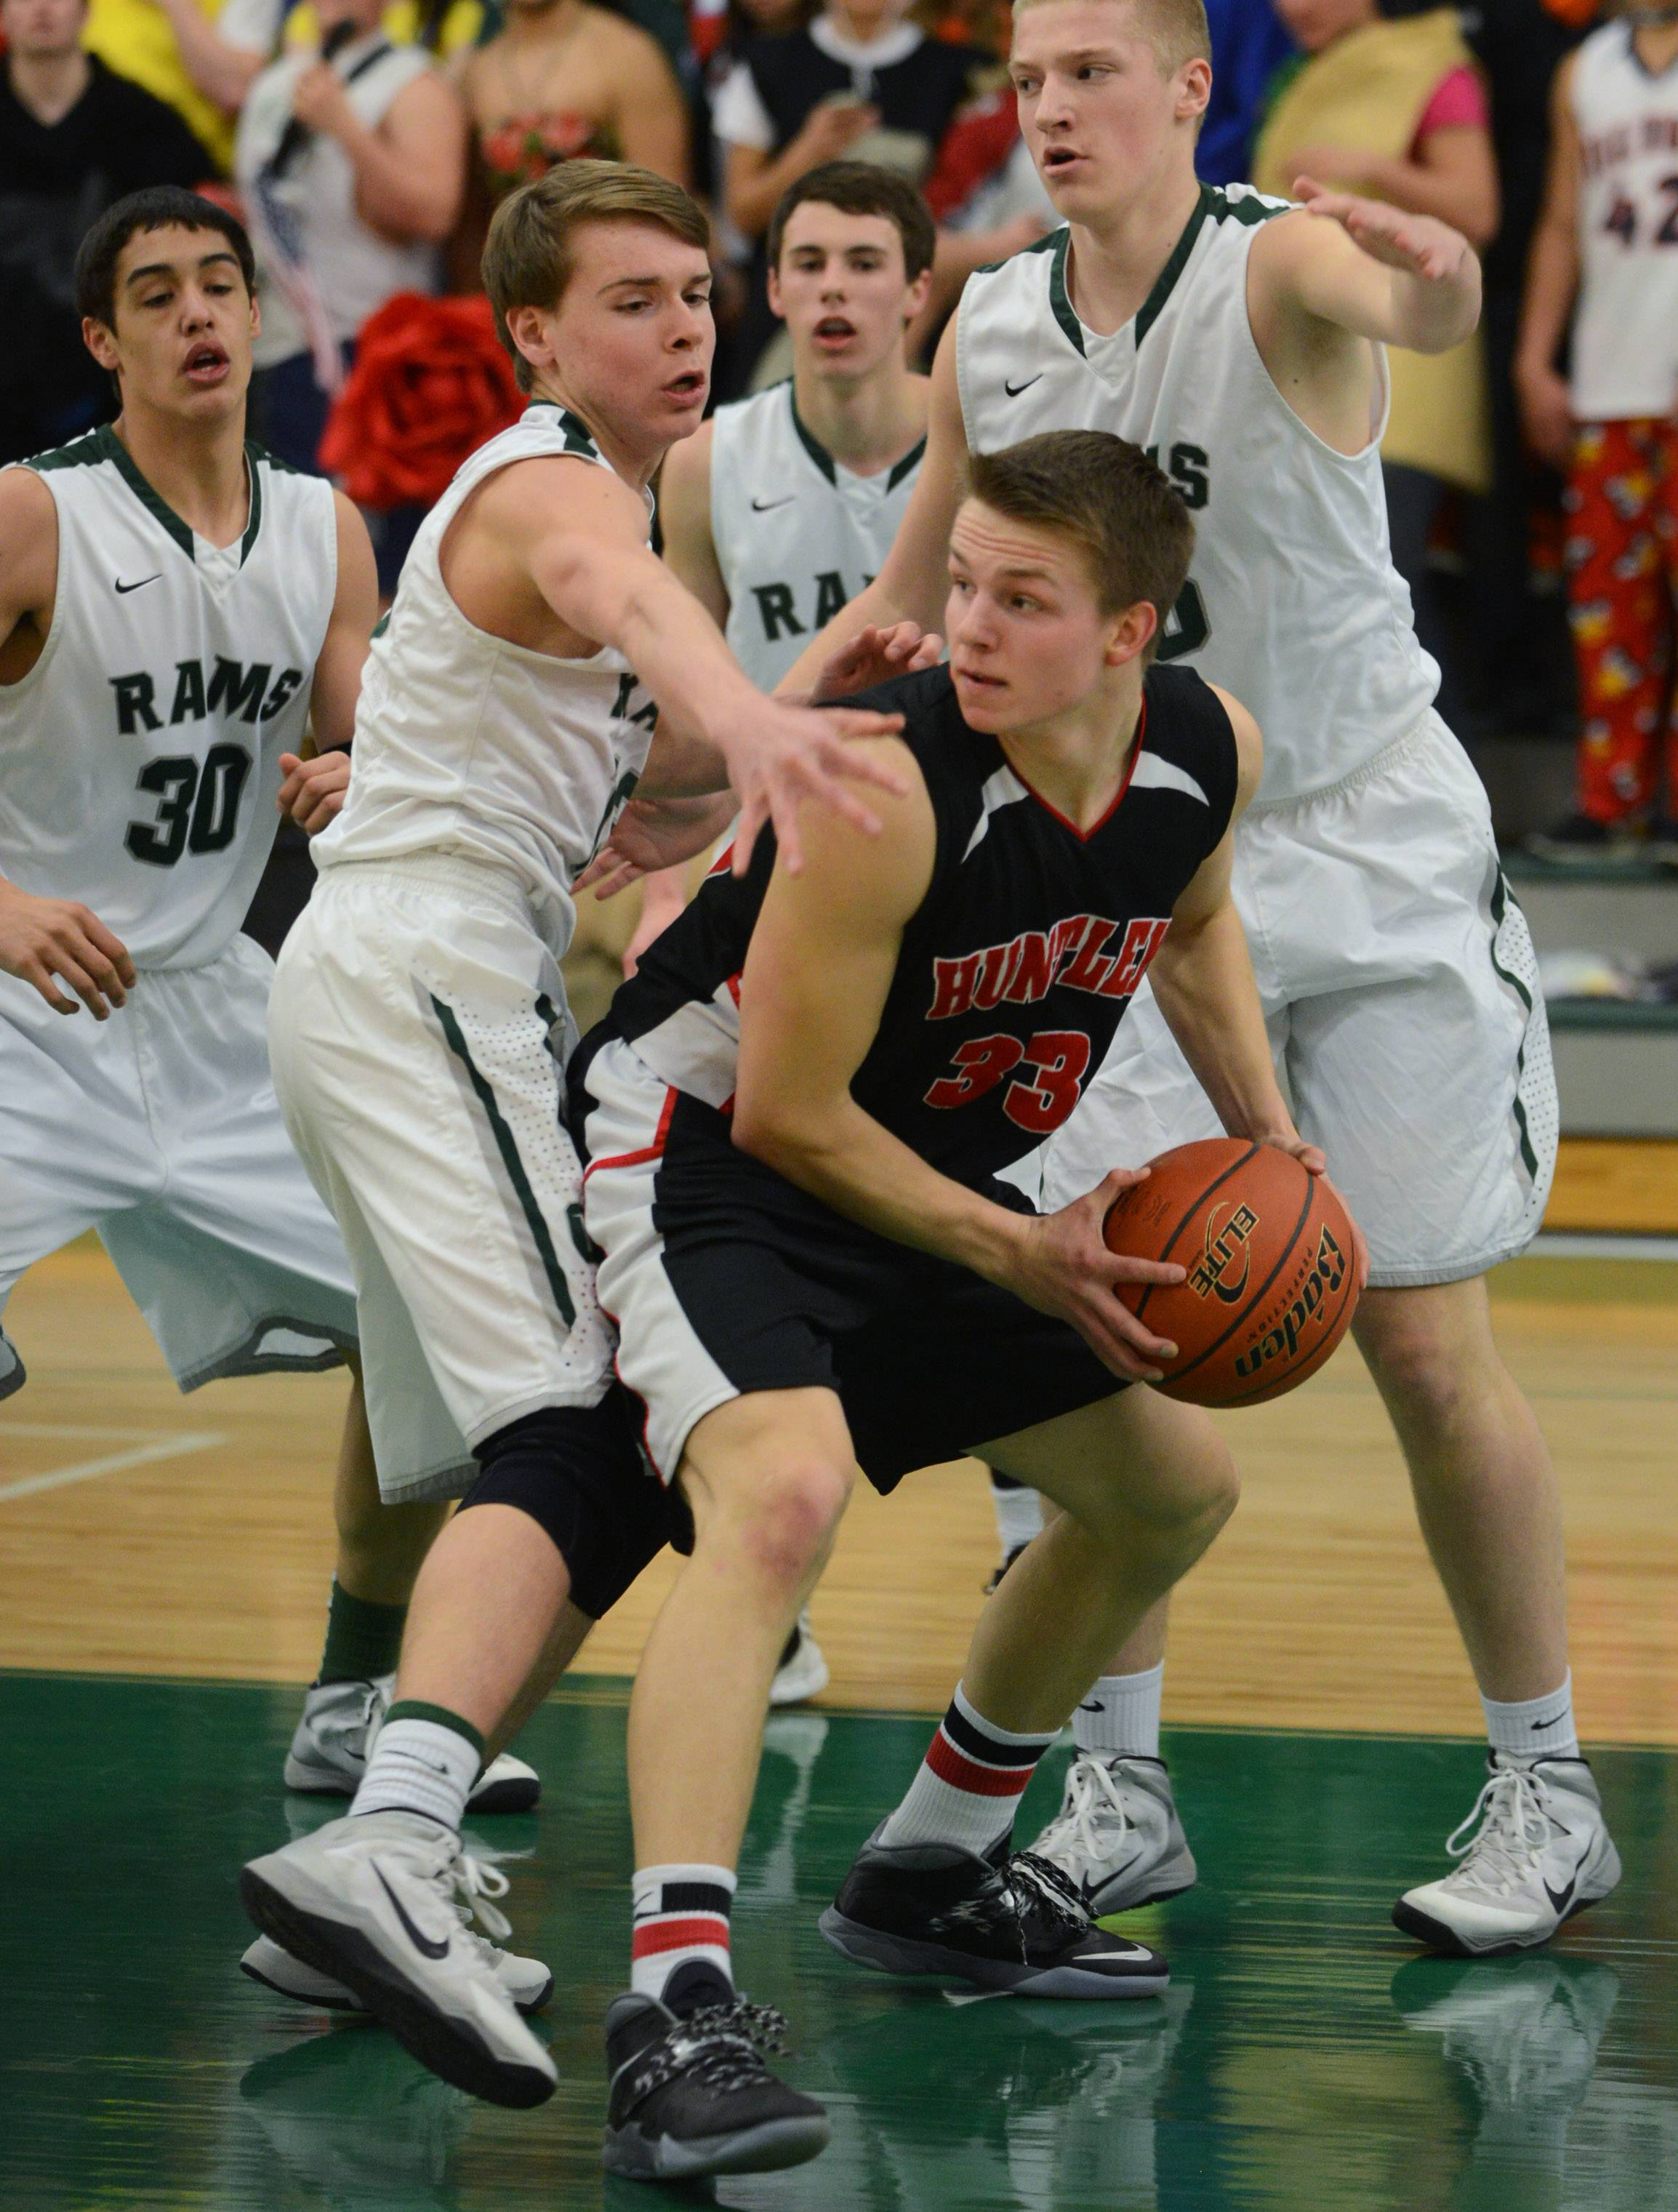 Huntley's Zach Gorney (33) looks to pass under heavy Grayslake Central pressure Friday night in Grayslake.